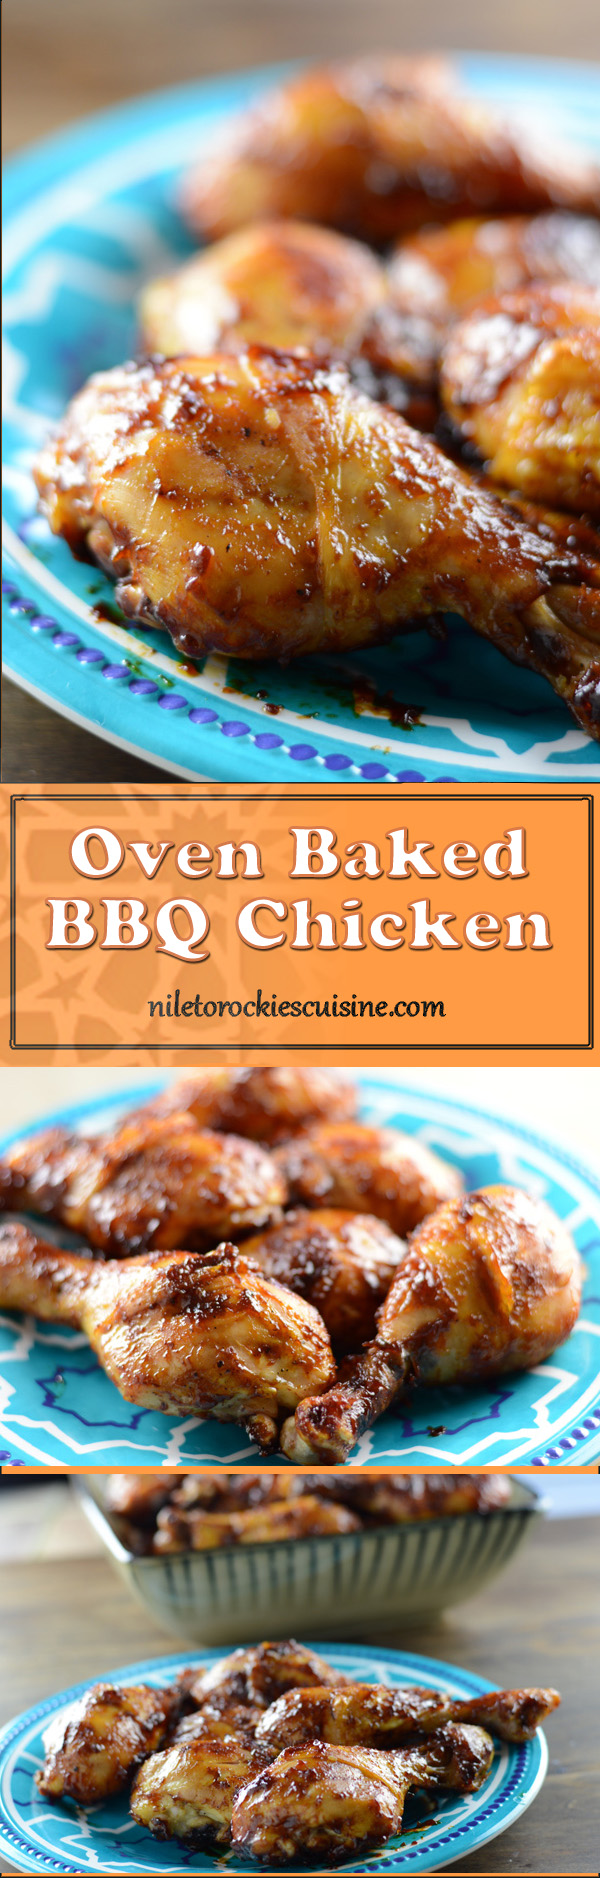 Luscious and tender recipe for BBQ chicken made right in the oven of your own kitchen.One of the easiest bbq chicken recipes that ever existed and guess what?, it only requires a handful of ingredients that is probably there in your kitchen.